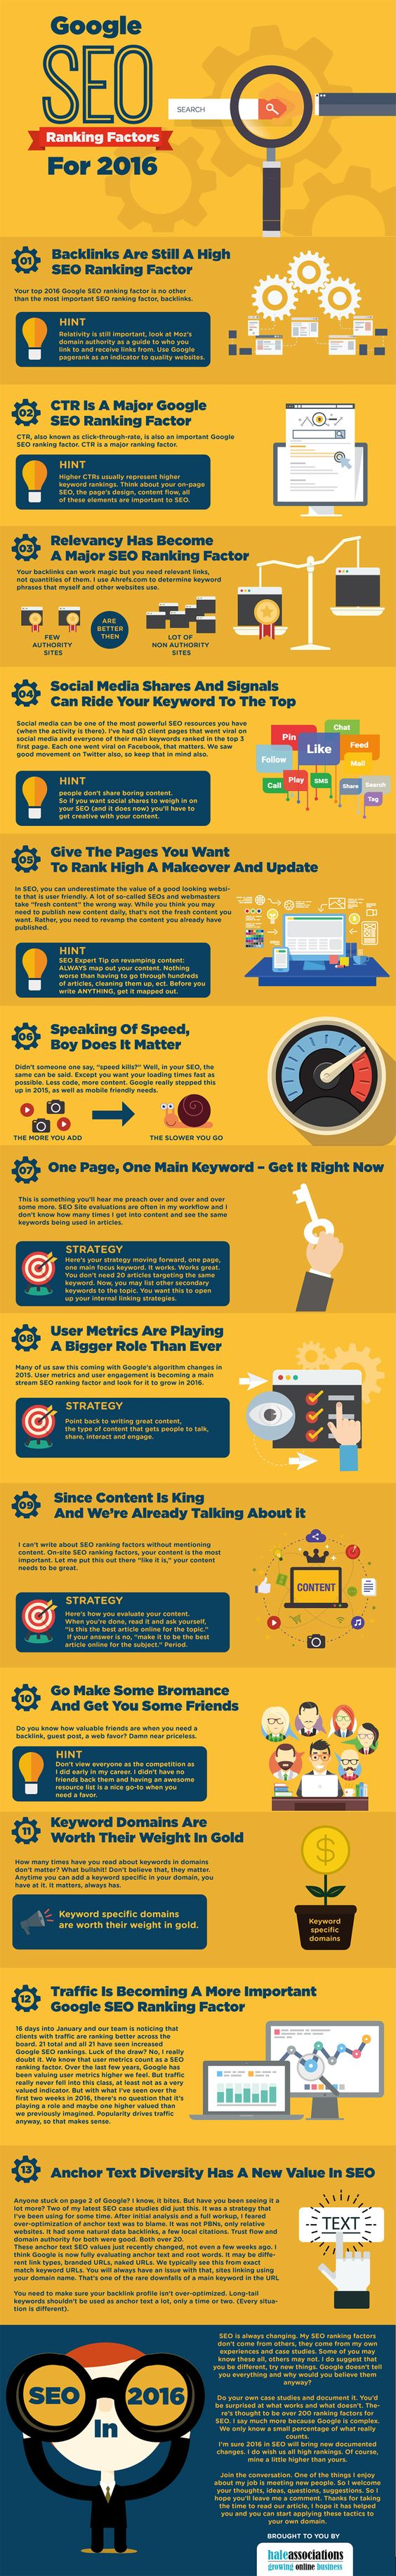 SEO in 2106: The 13 Ranking Factors you sould Concentrate on